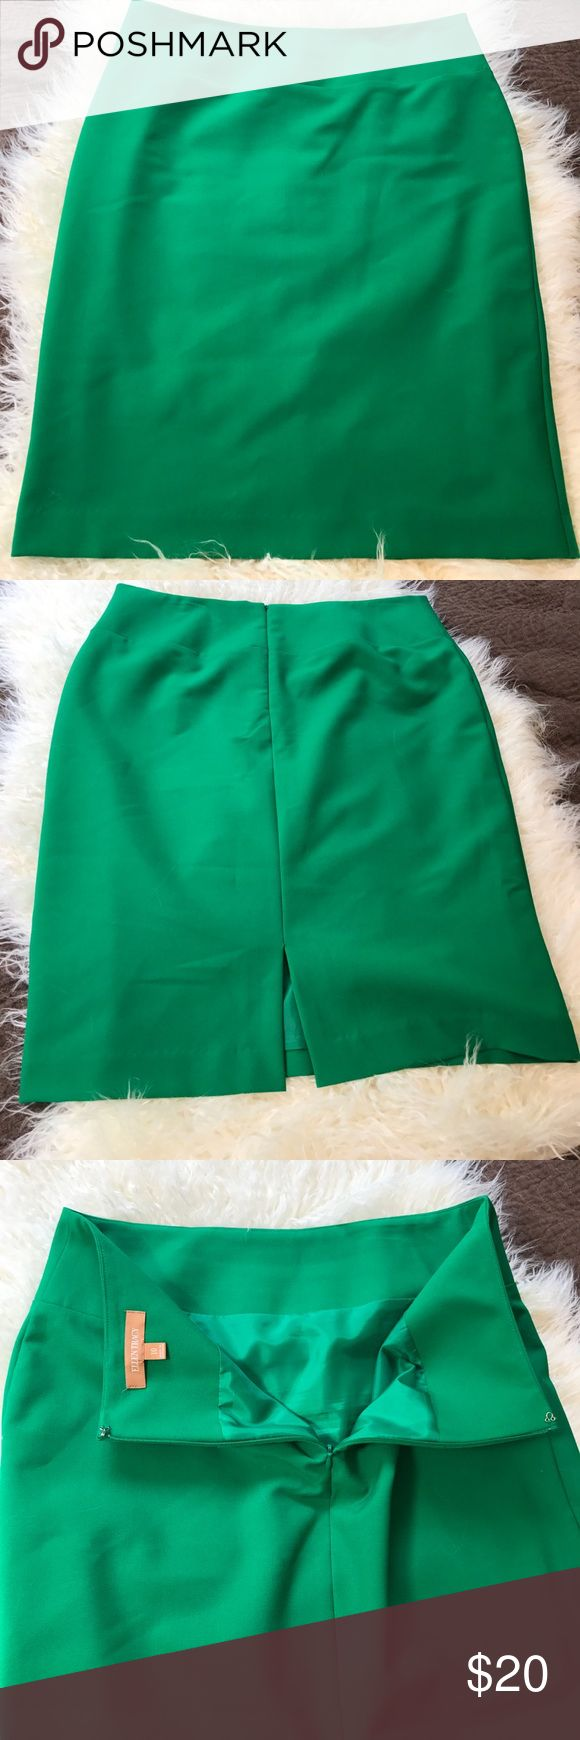 "Kelly Green Pencil Skirt Zip Lined Slit Classic 10 34"" waist 40"" hip 22.5"" length. Non smoker Ellen Tracy Skirts Pencil"